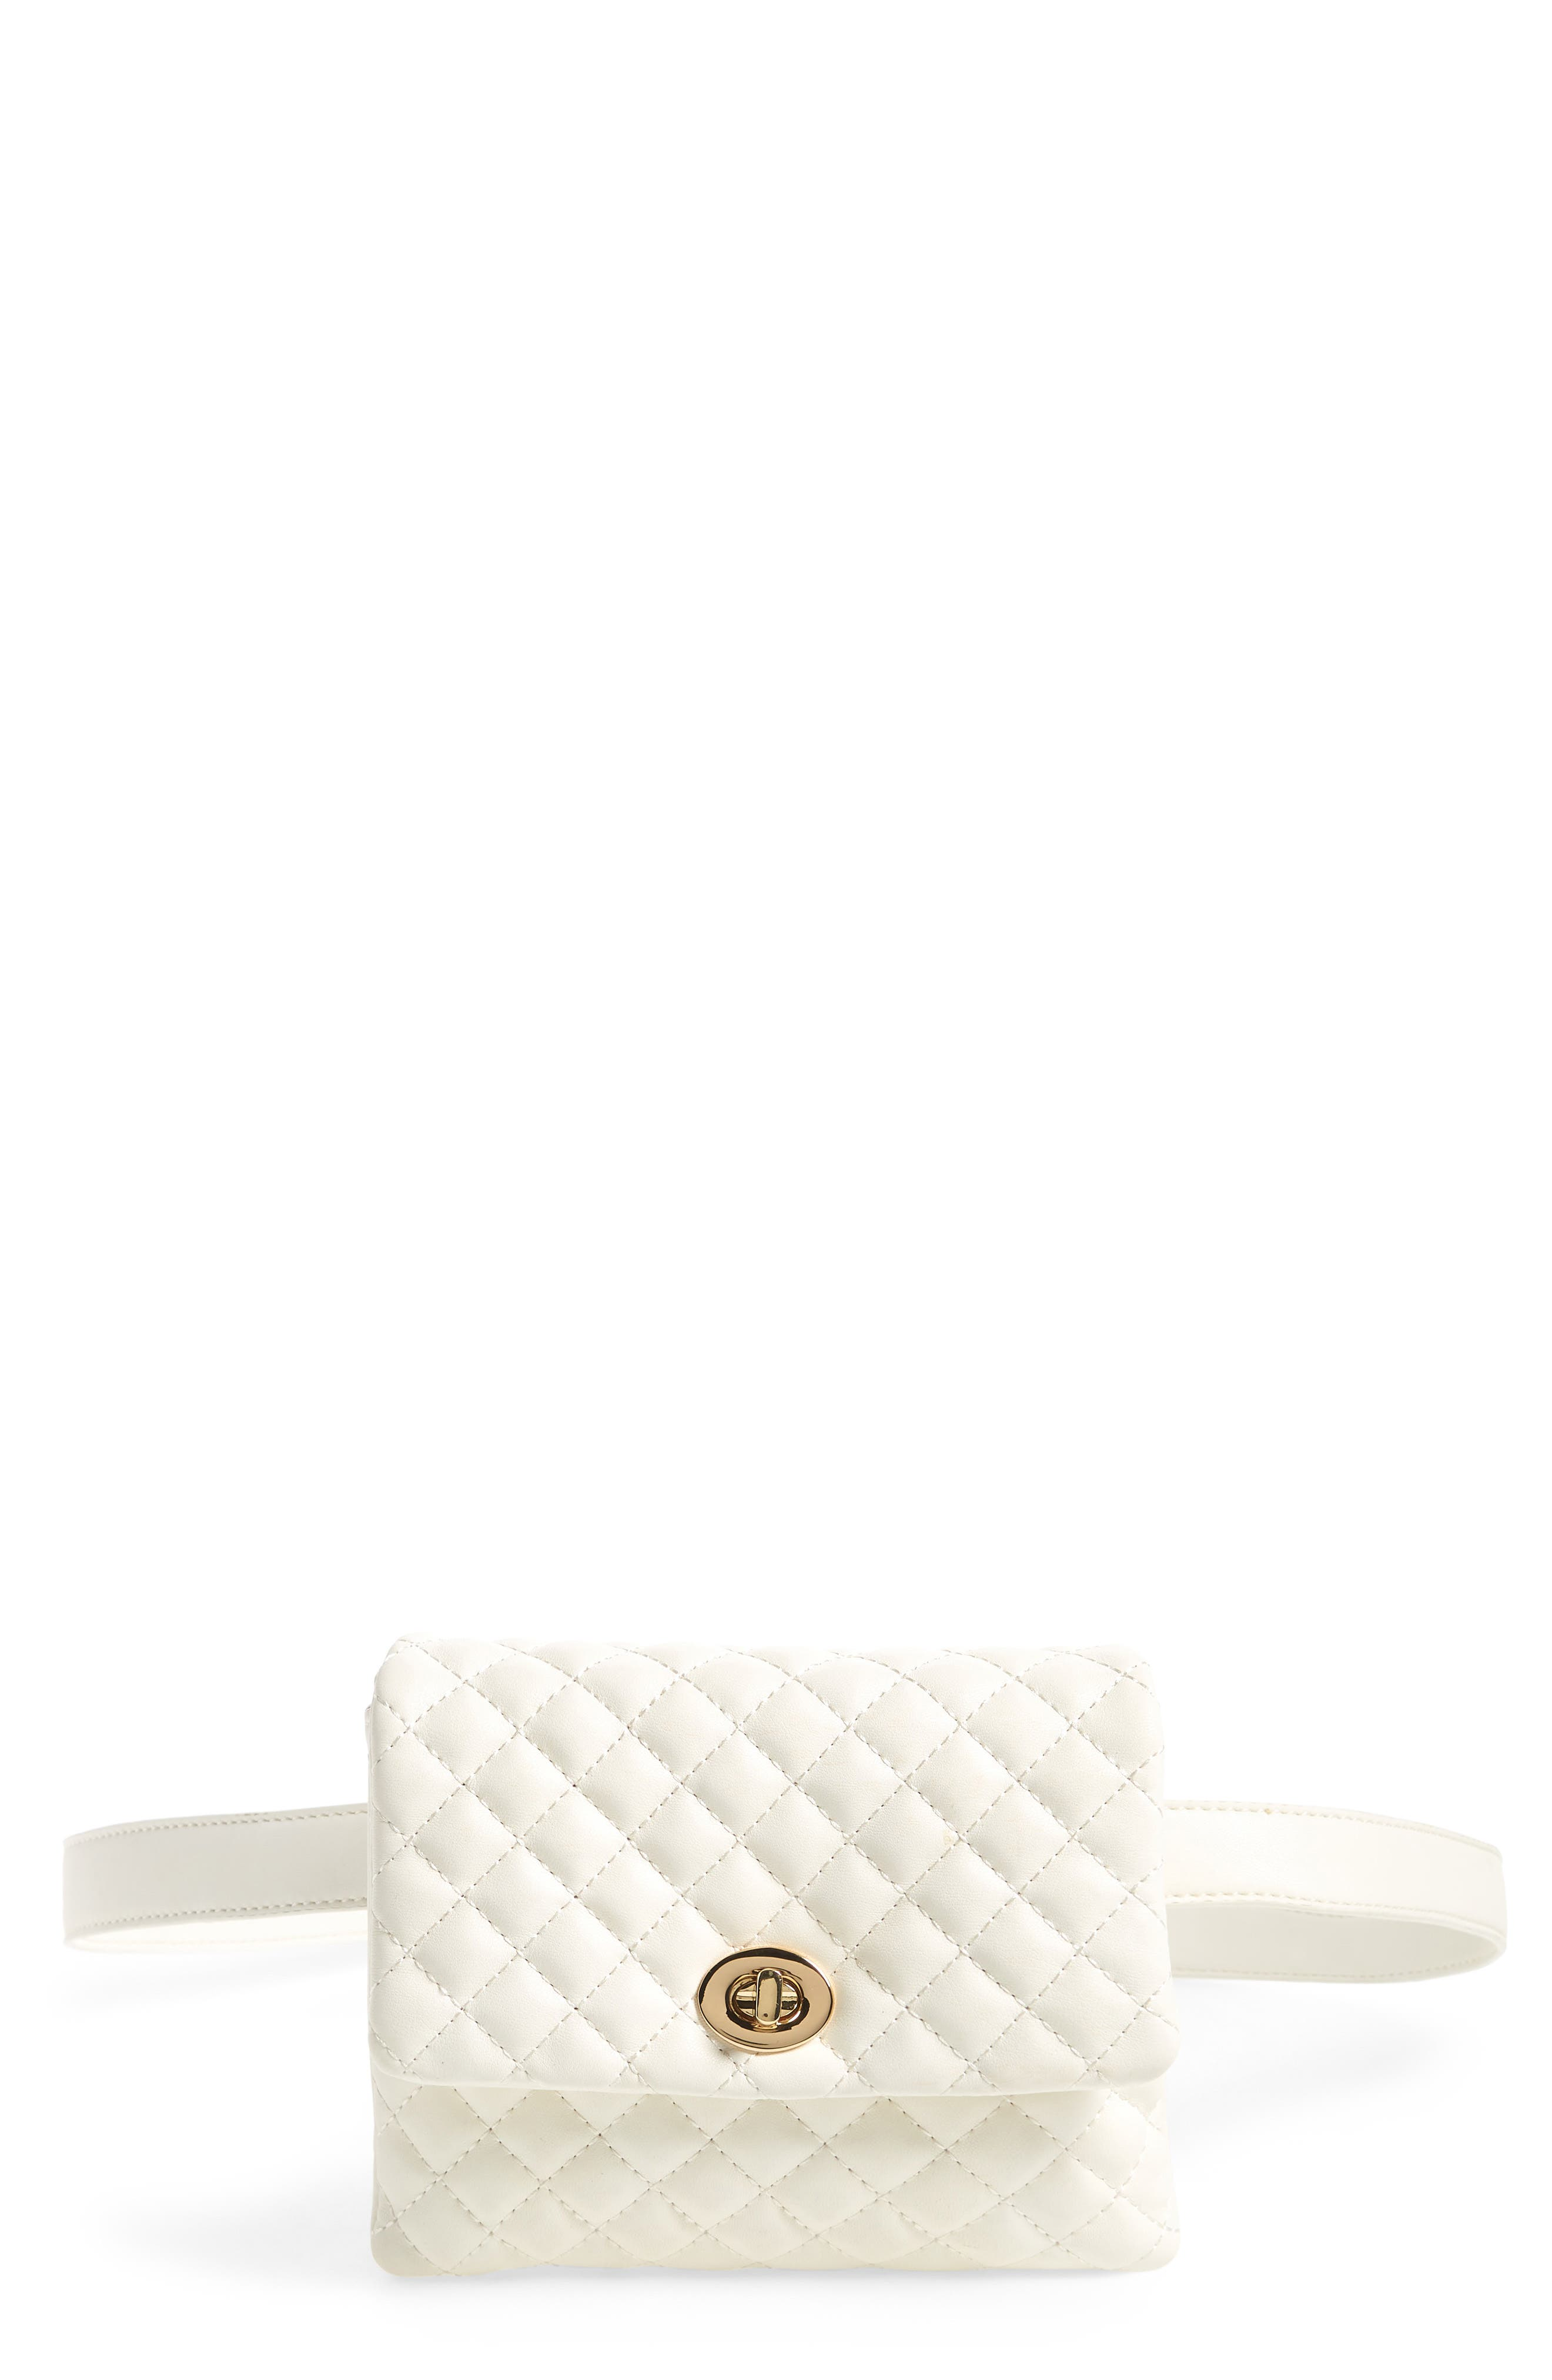 Mali + Lili Quilted Vegan Leather Convertible Belt Bag,                             Main thumbnail 1, color,                             WHITE